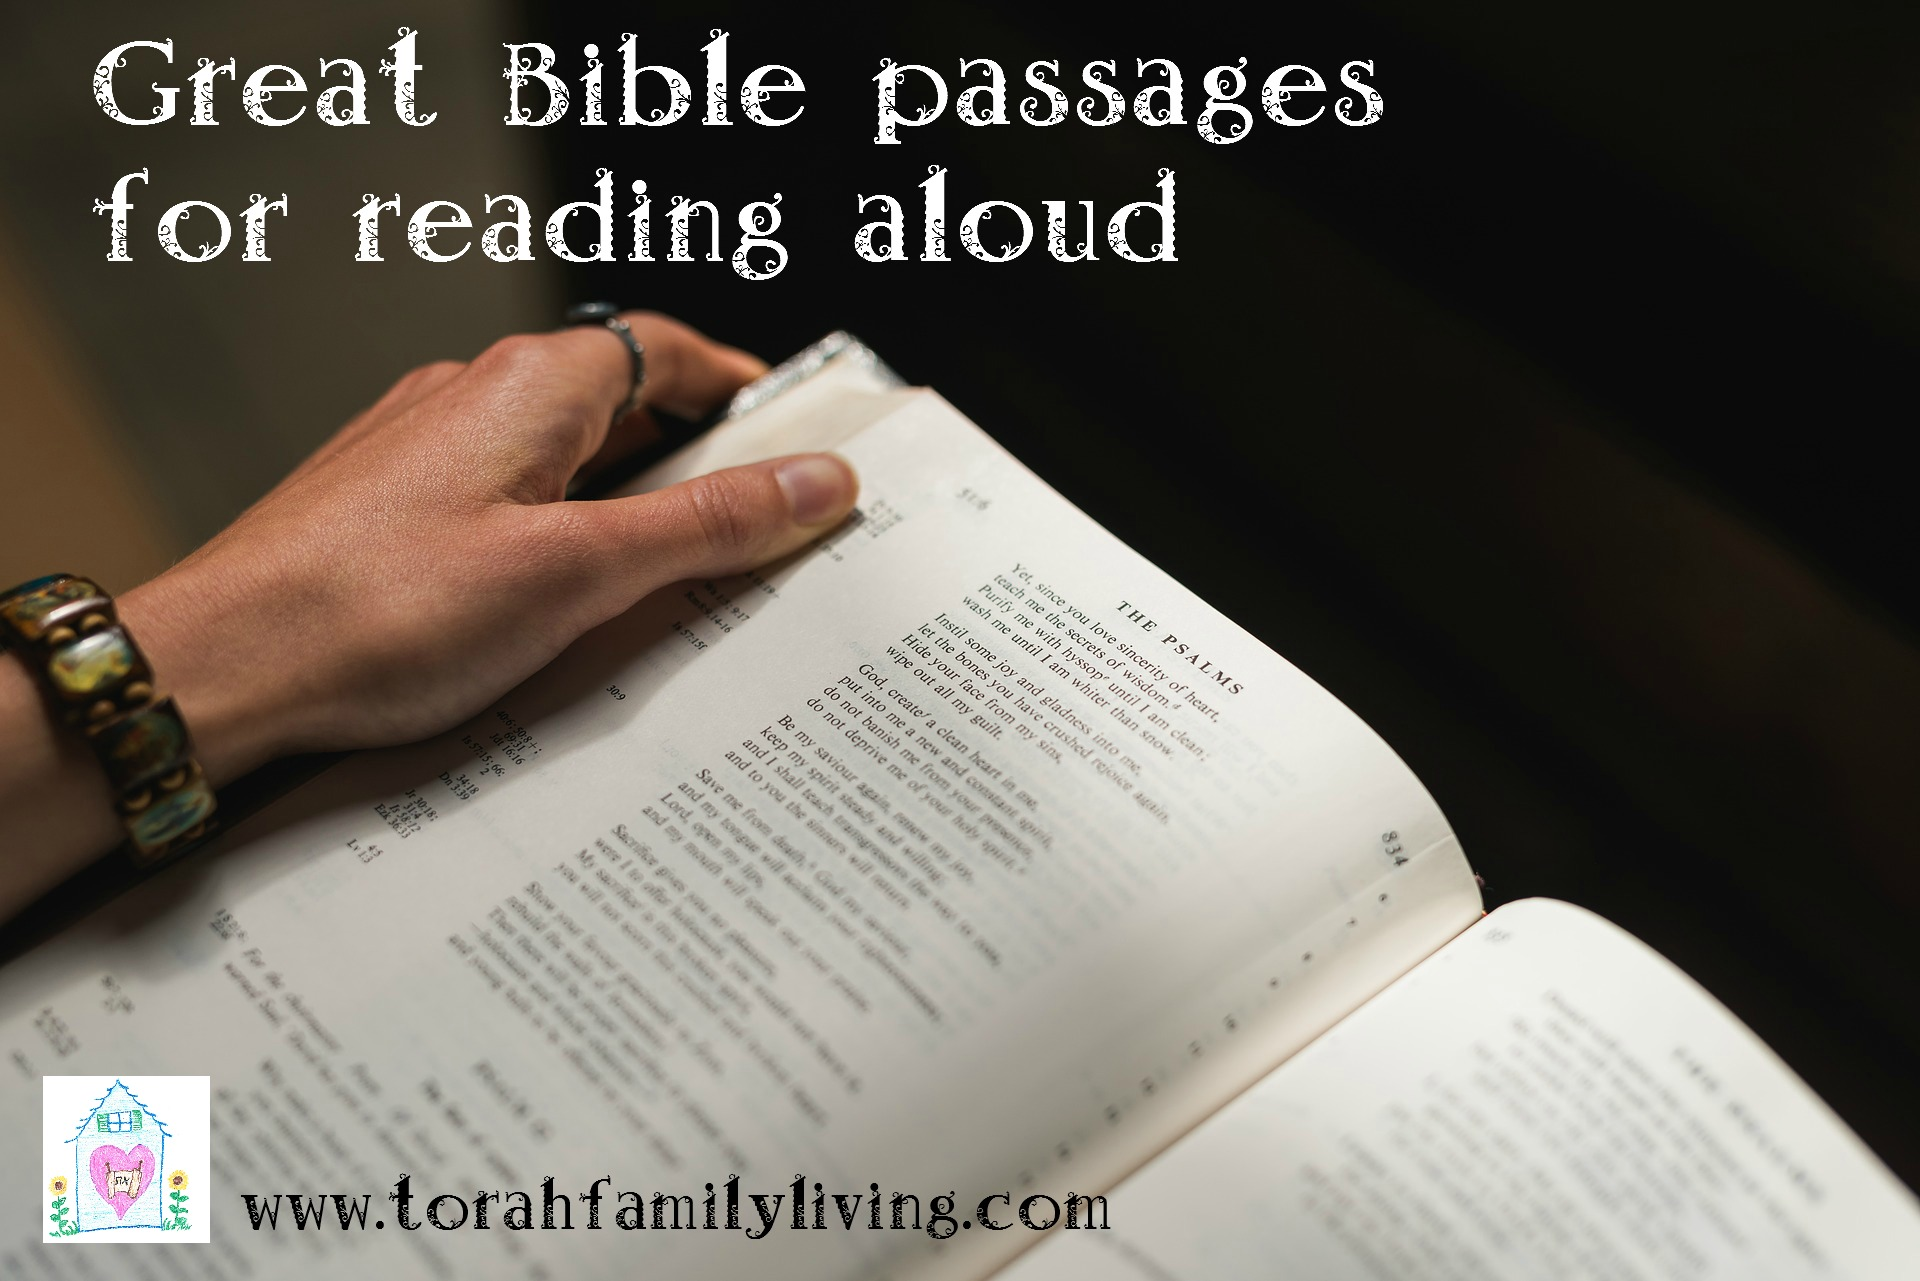 Great Bible passages for reading aloud